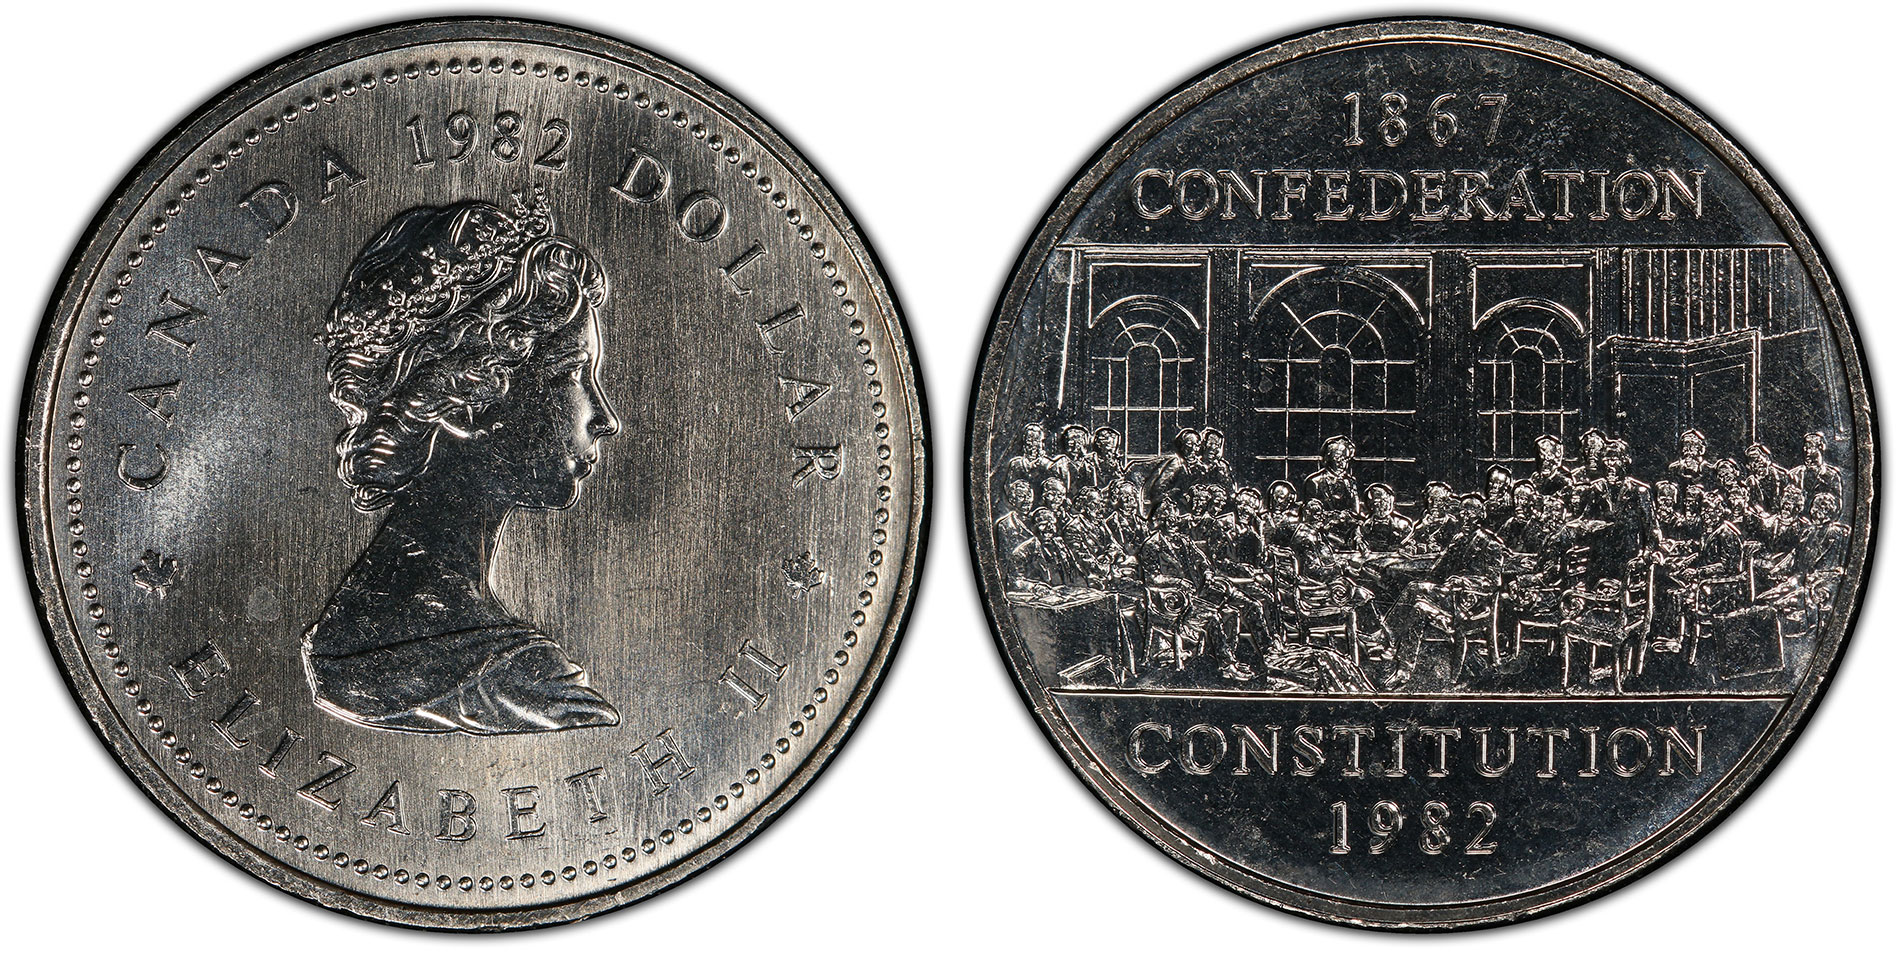 Canada 1982 $1 Constitution Coin Alignment (Regular Strike) PCGS MS66. Images courtesy PCGS